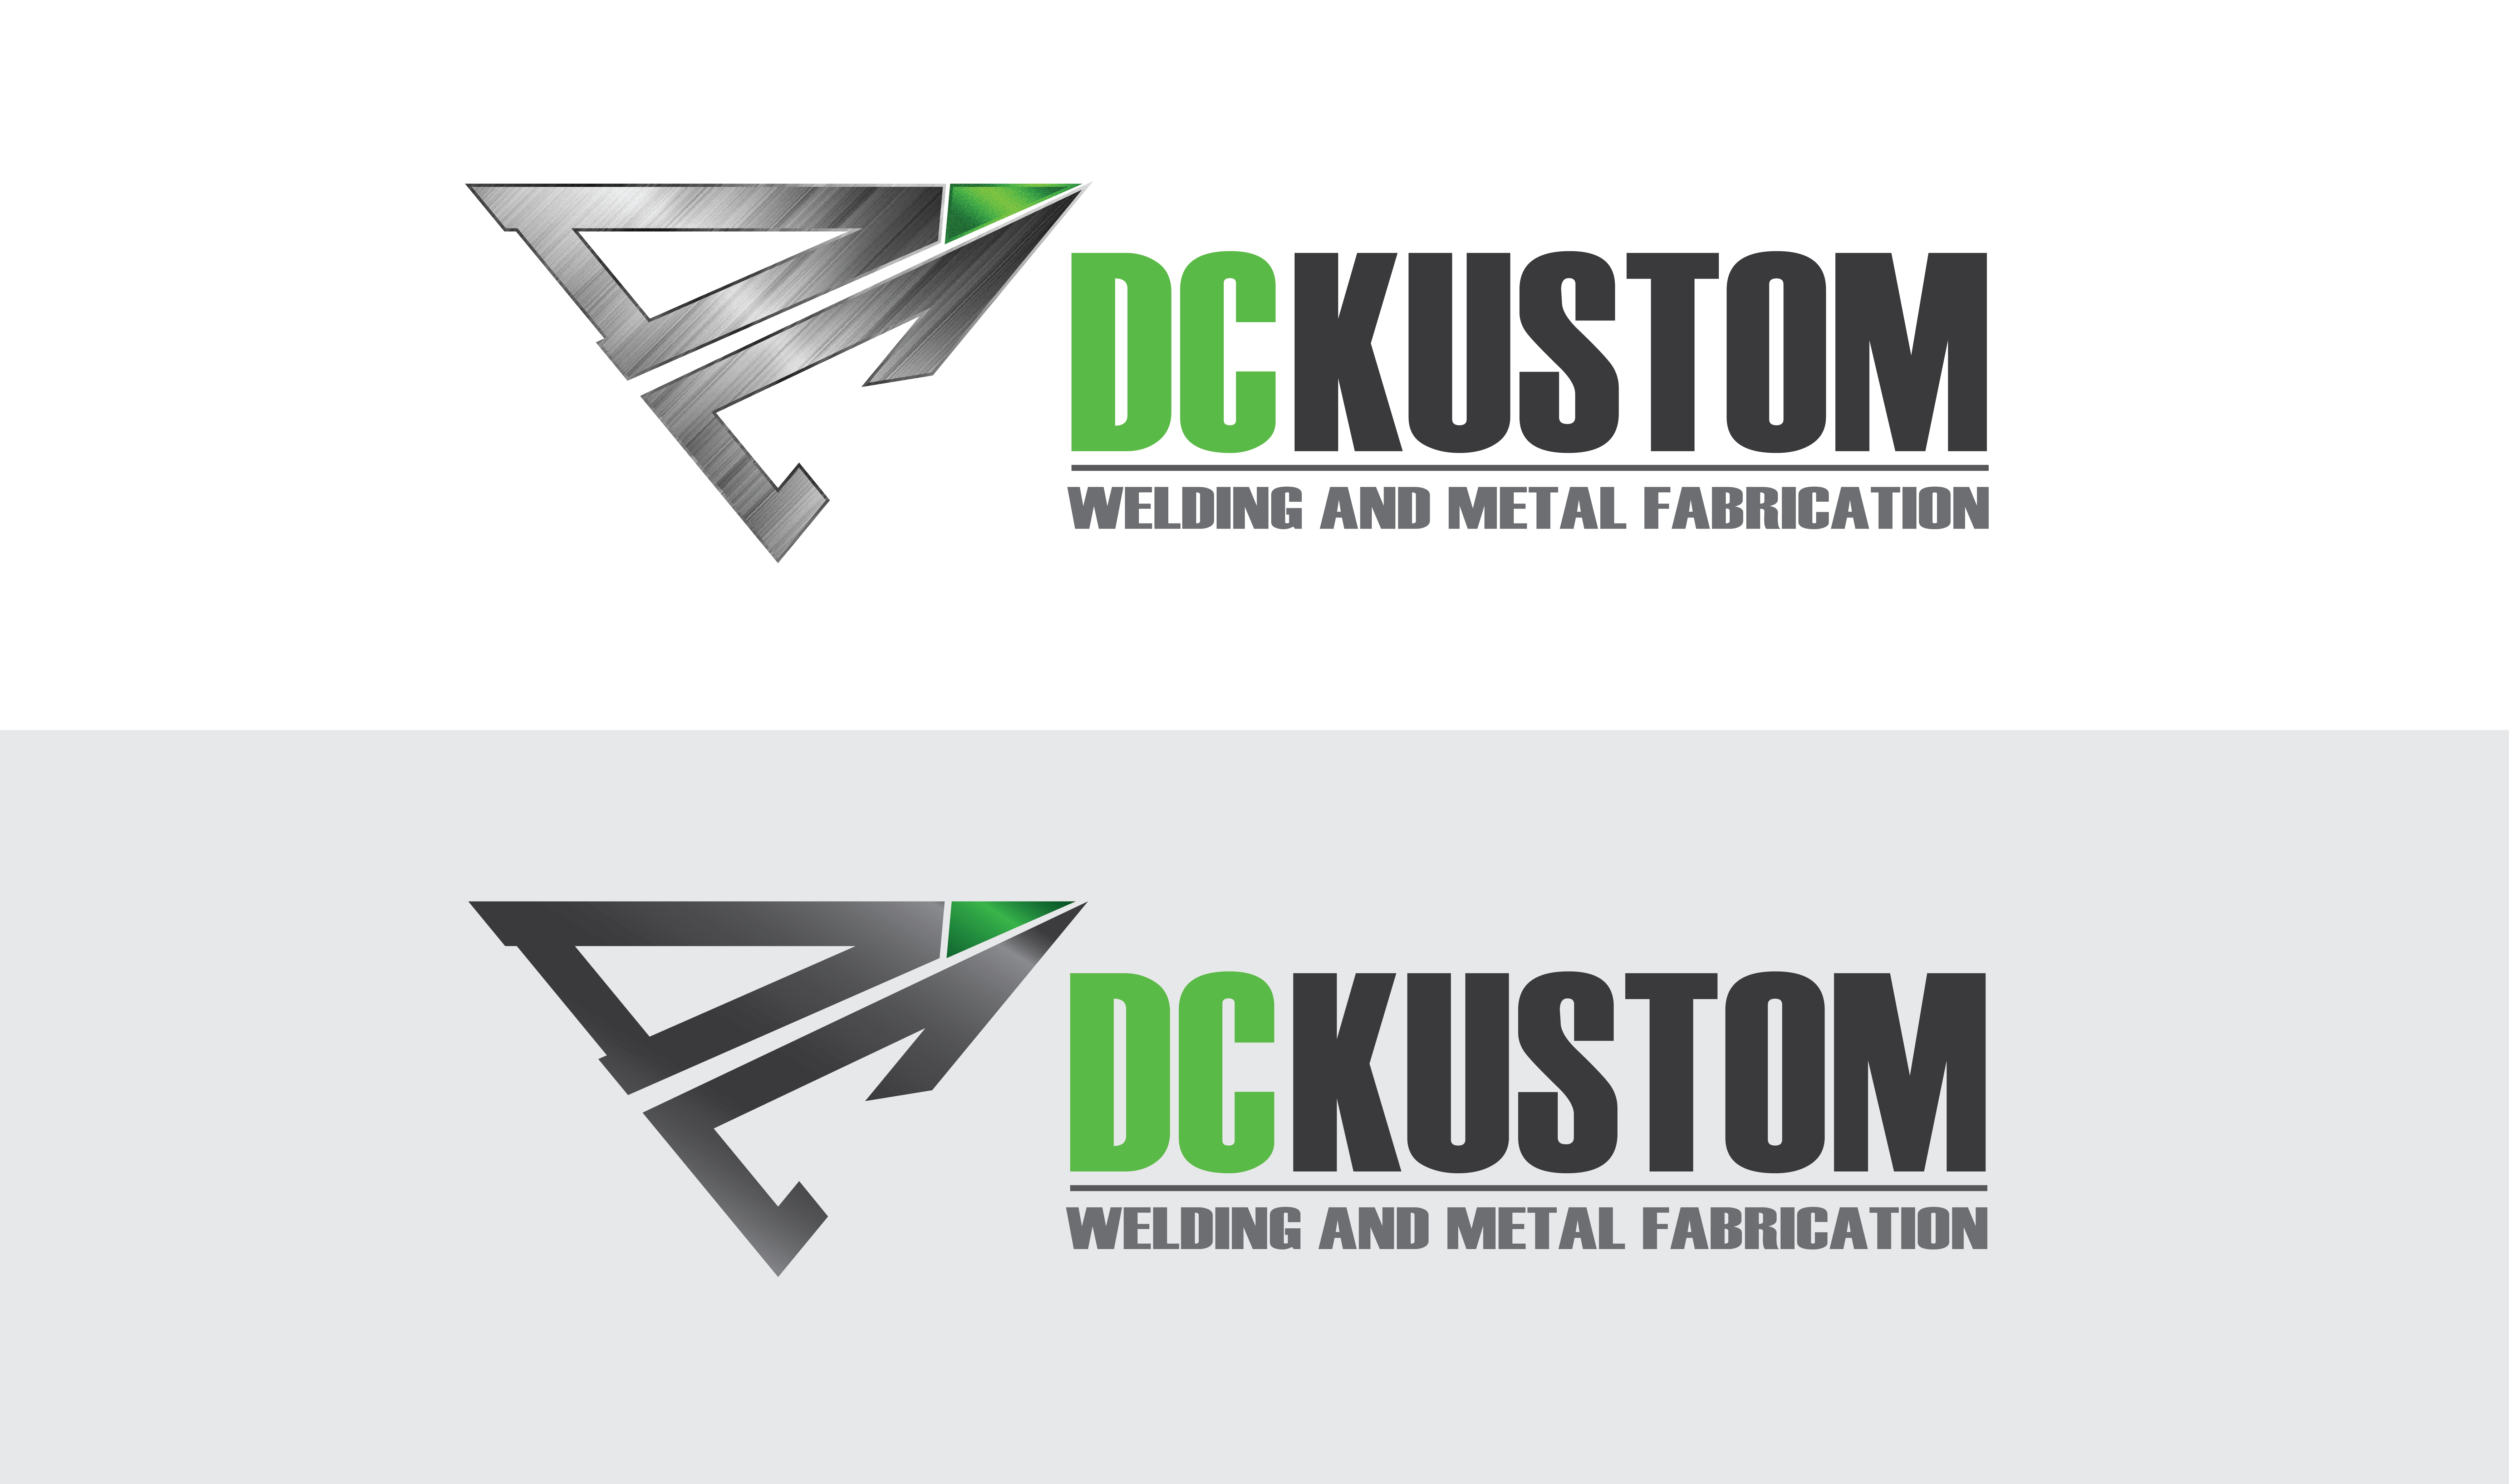 Logo Design by Ivan Aguilon - Entry No. 139 in the Logo Design Contest Imaginative Logo Design for DC KUSTOM WELDING & METAL FABRICATION.